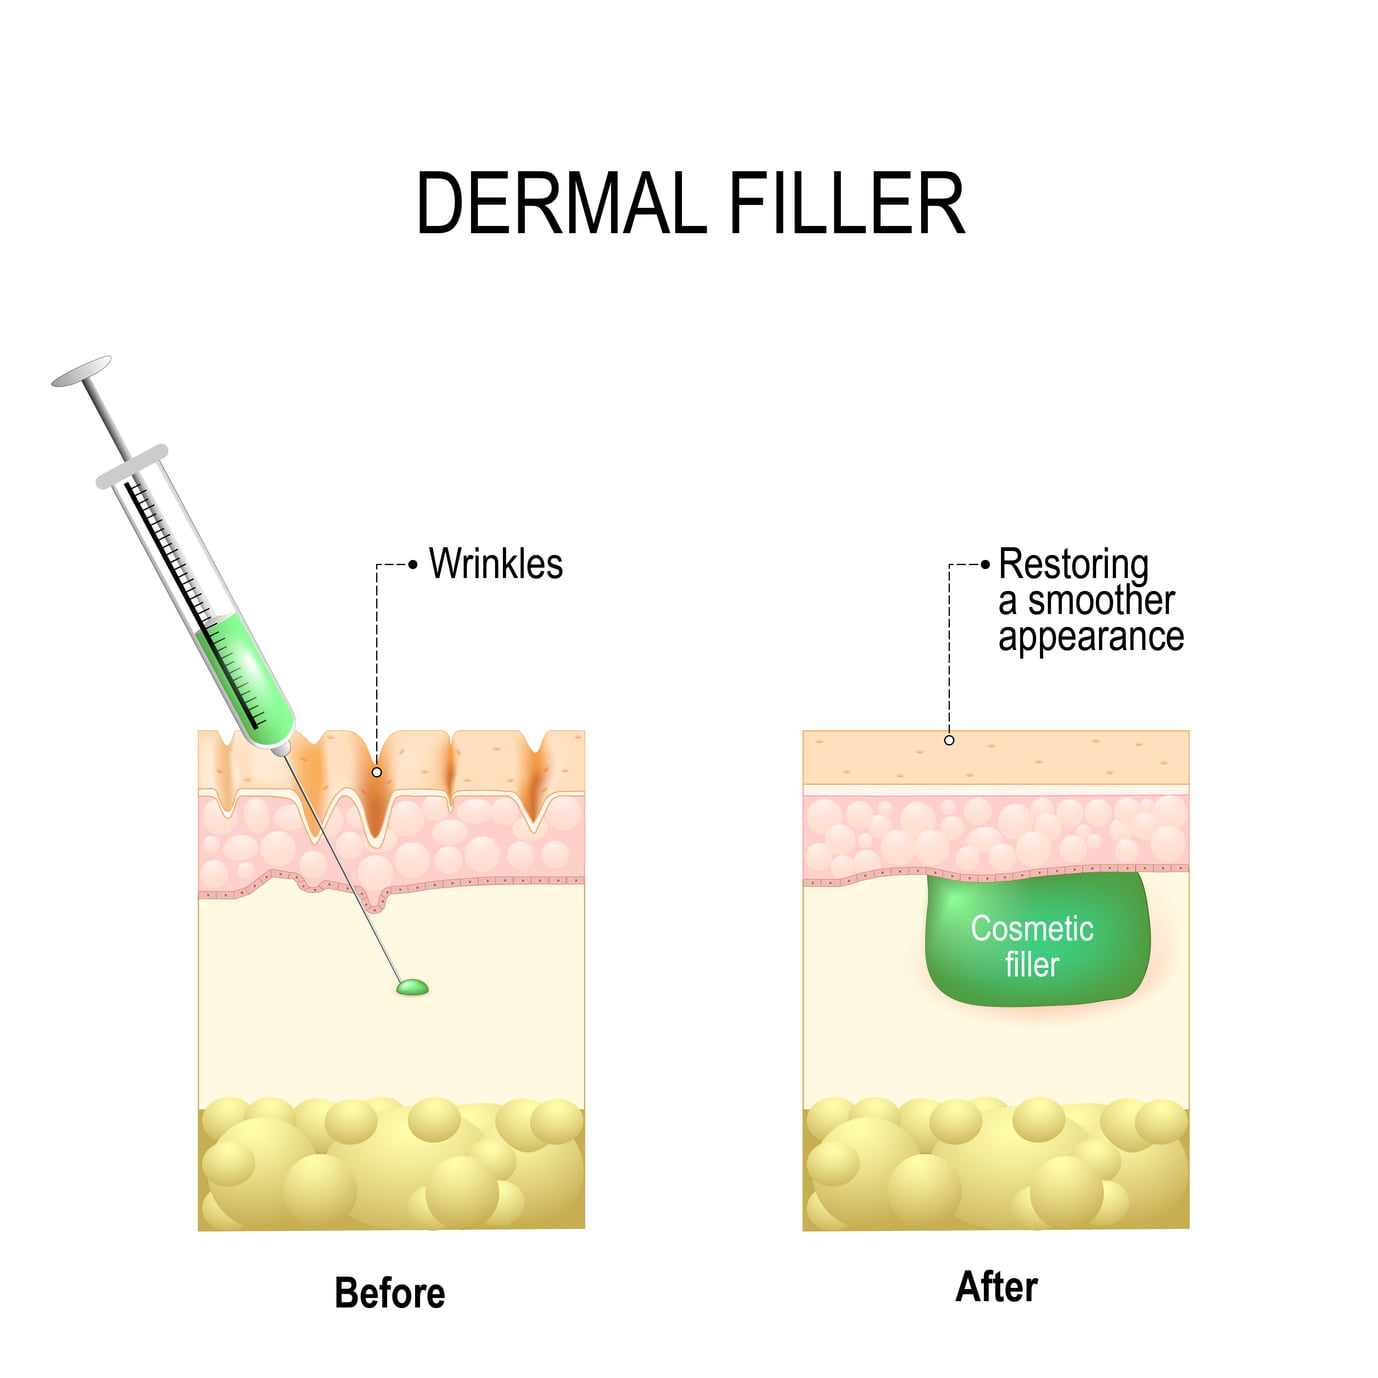 5 Things to Know About Dermal Fillers